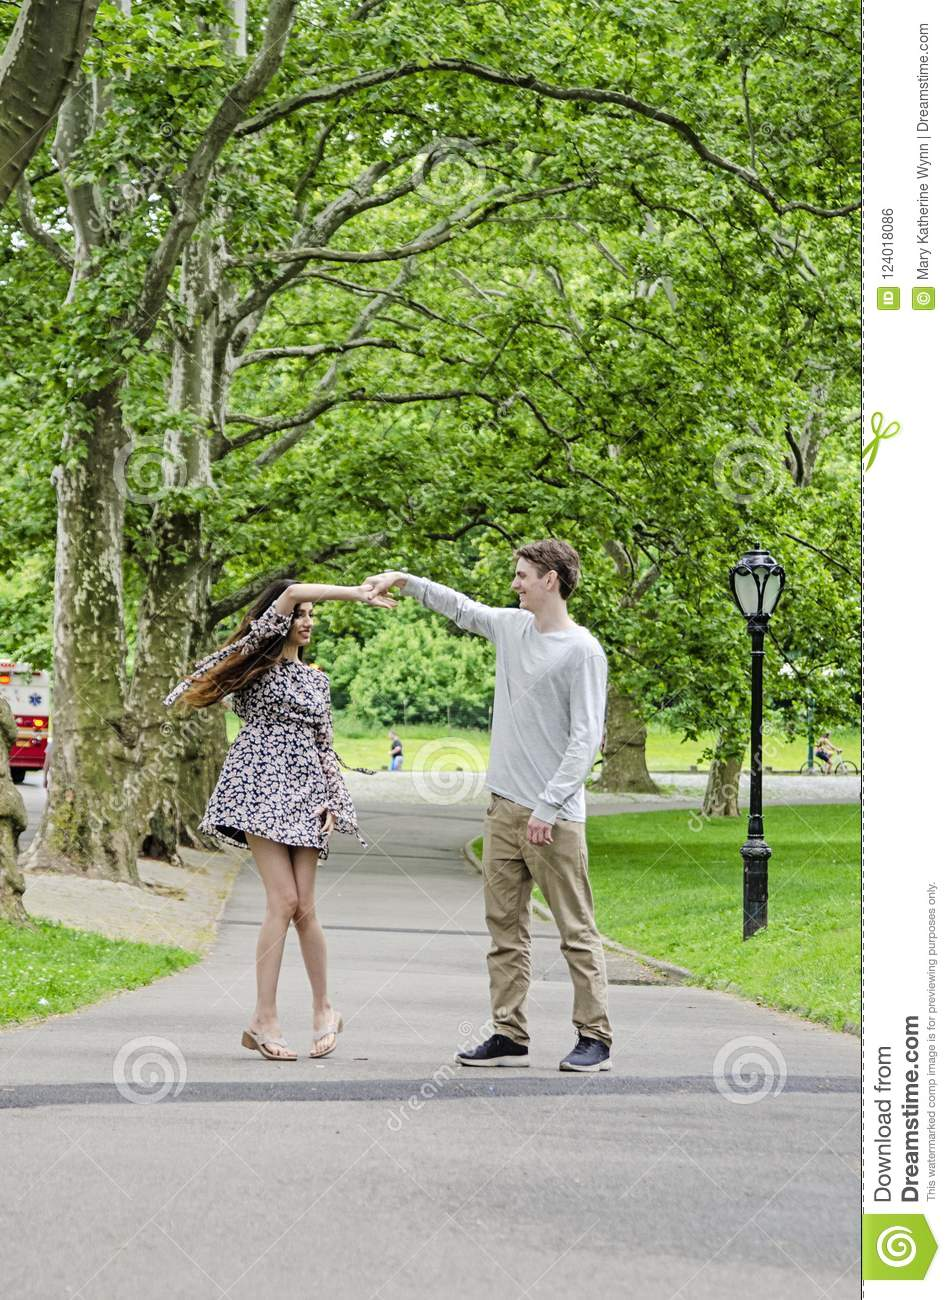 Couple having fun in Central Park in New York City